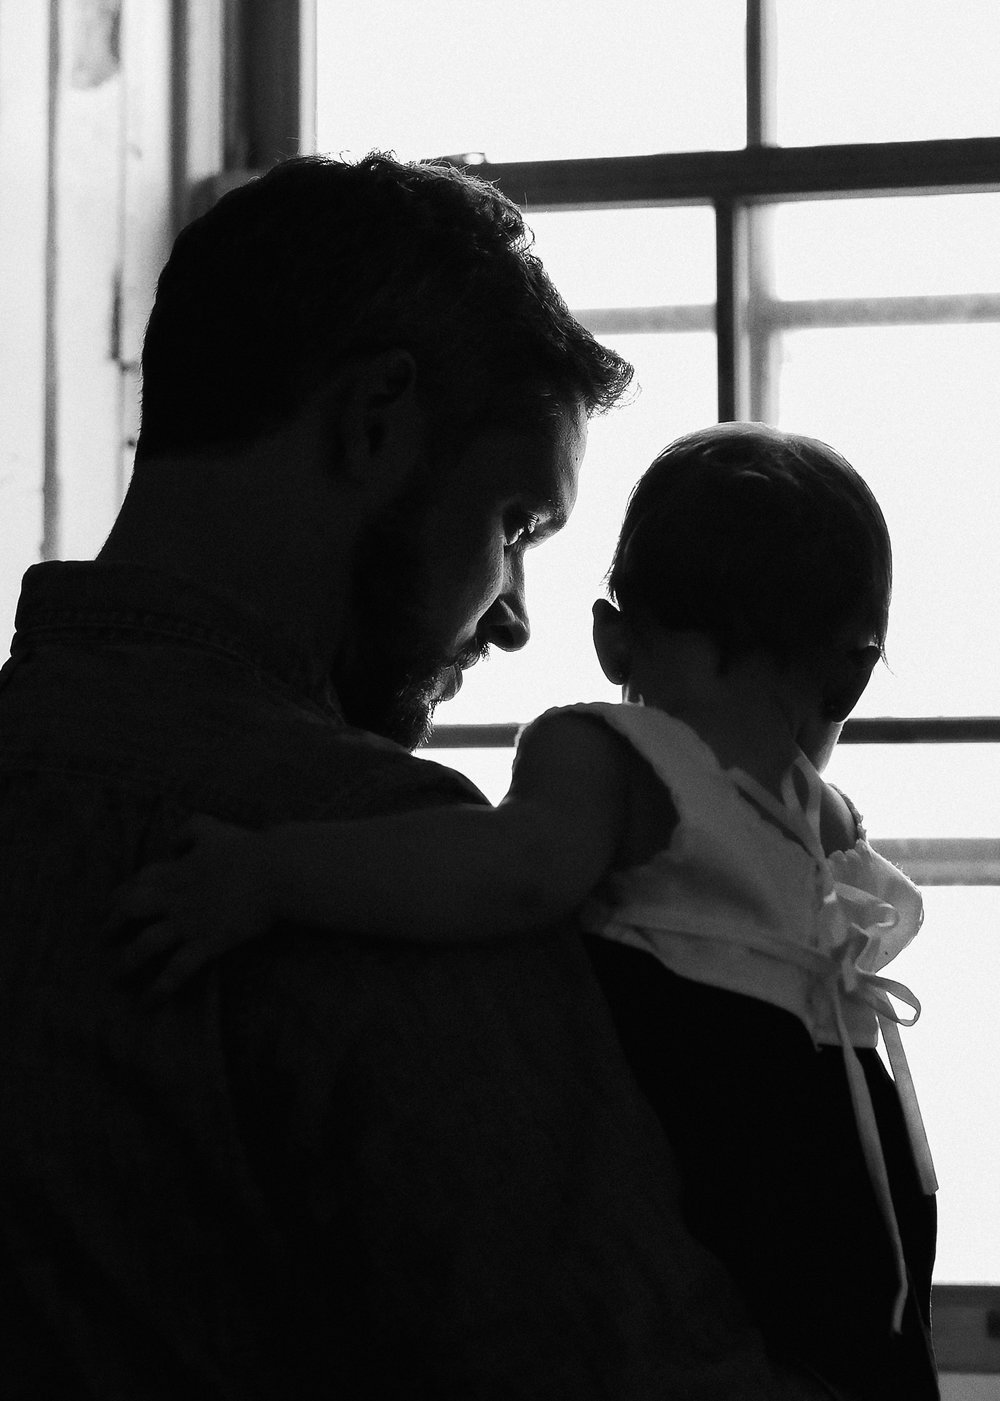 black and white image of a father holding his daughter looking out the window